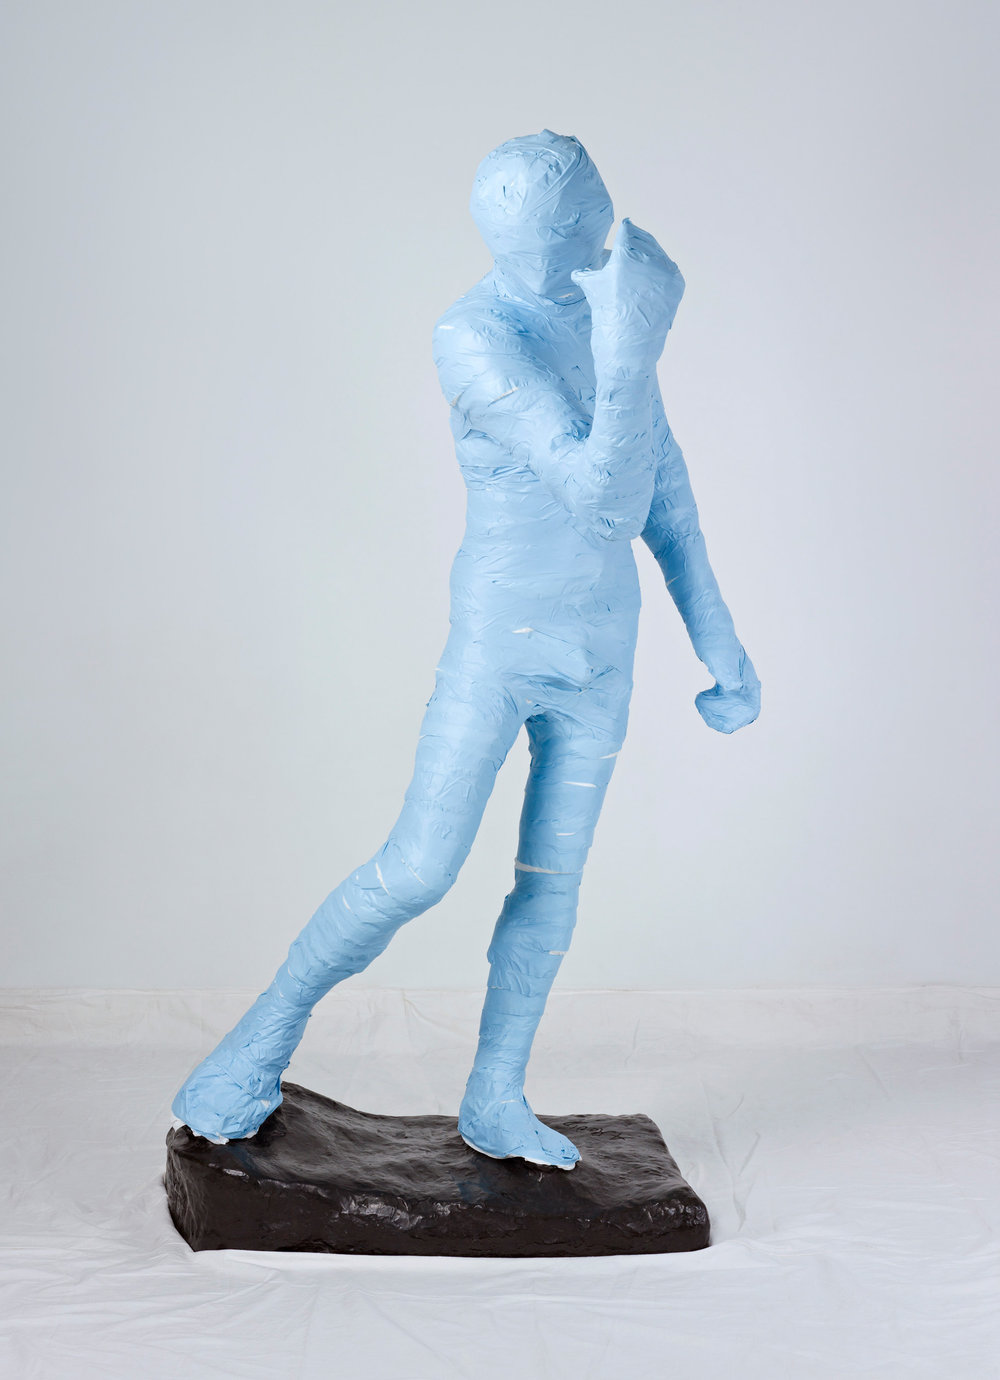 Unwrapping Rodin (Blue) 1   2010, colour photograph 127 x 175 cm / 50 x 69 in. Edition of 2